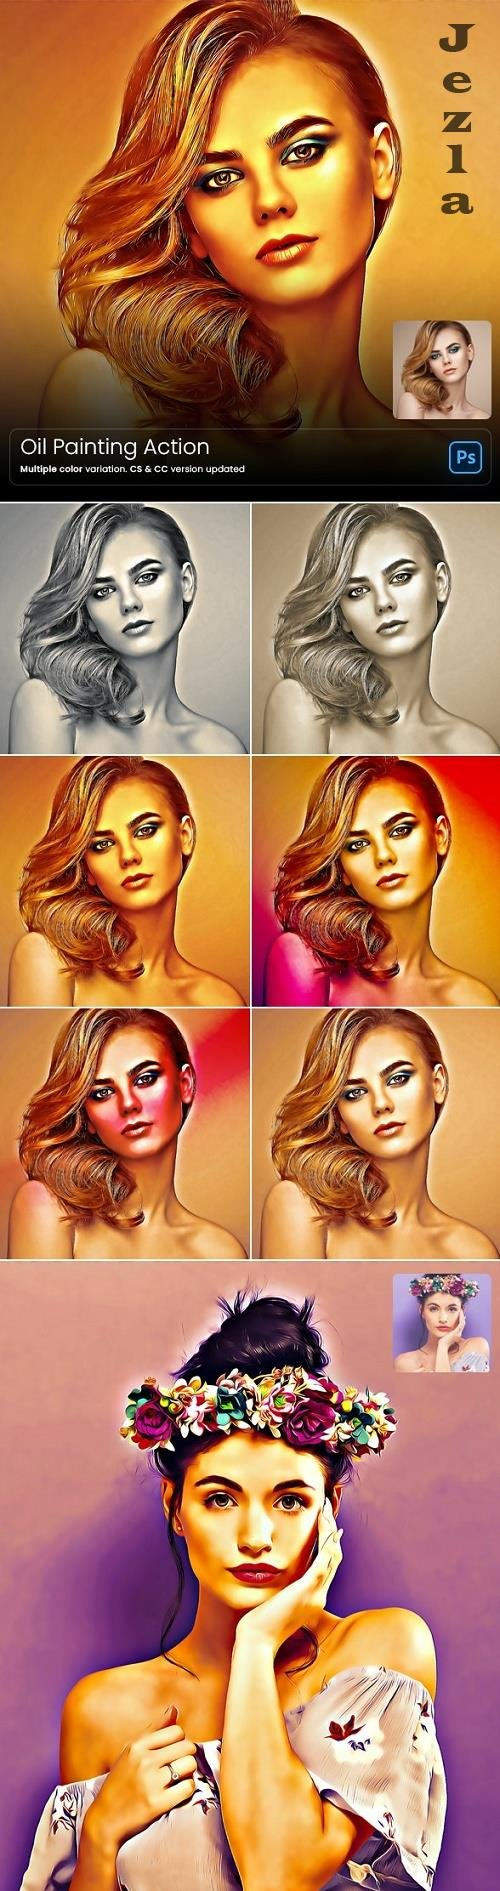 GraphicRiver - Oil Painting Action 29228095